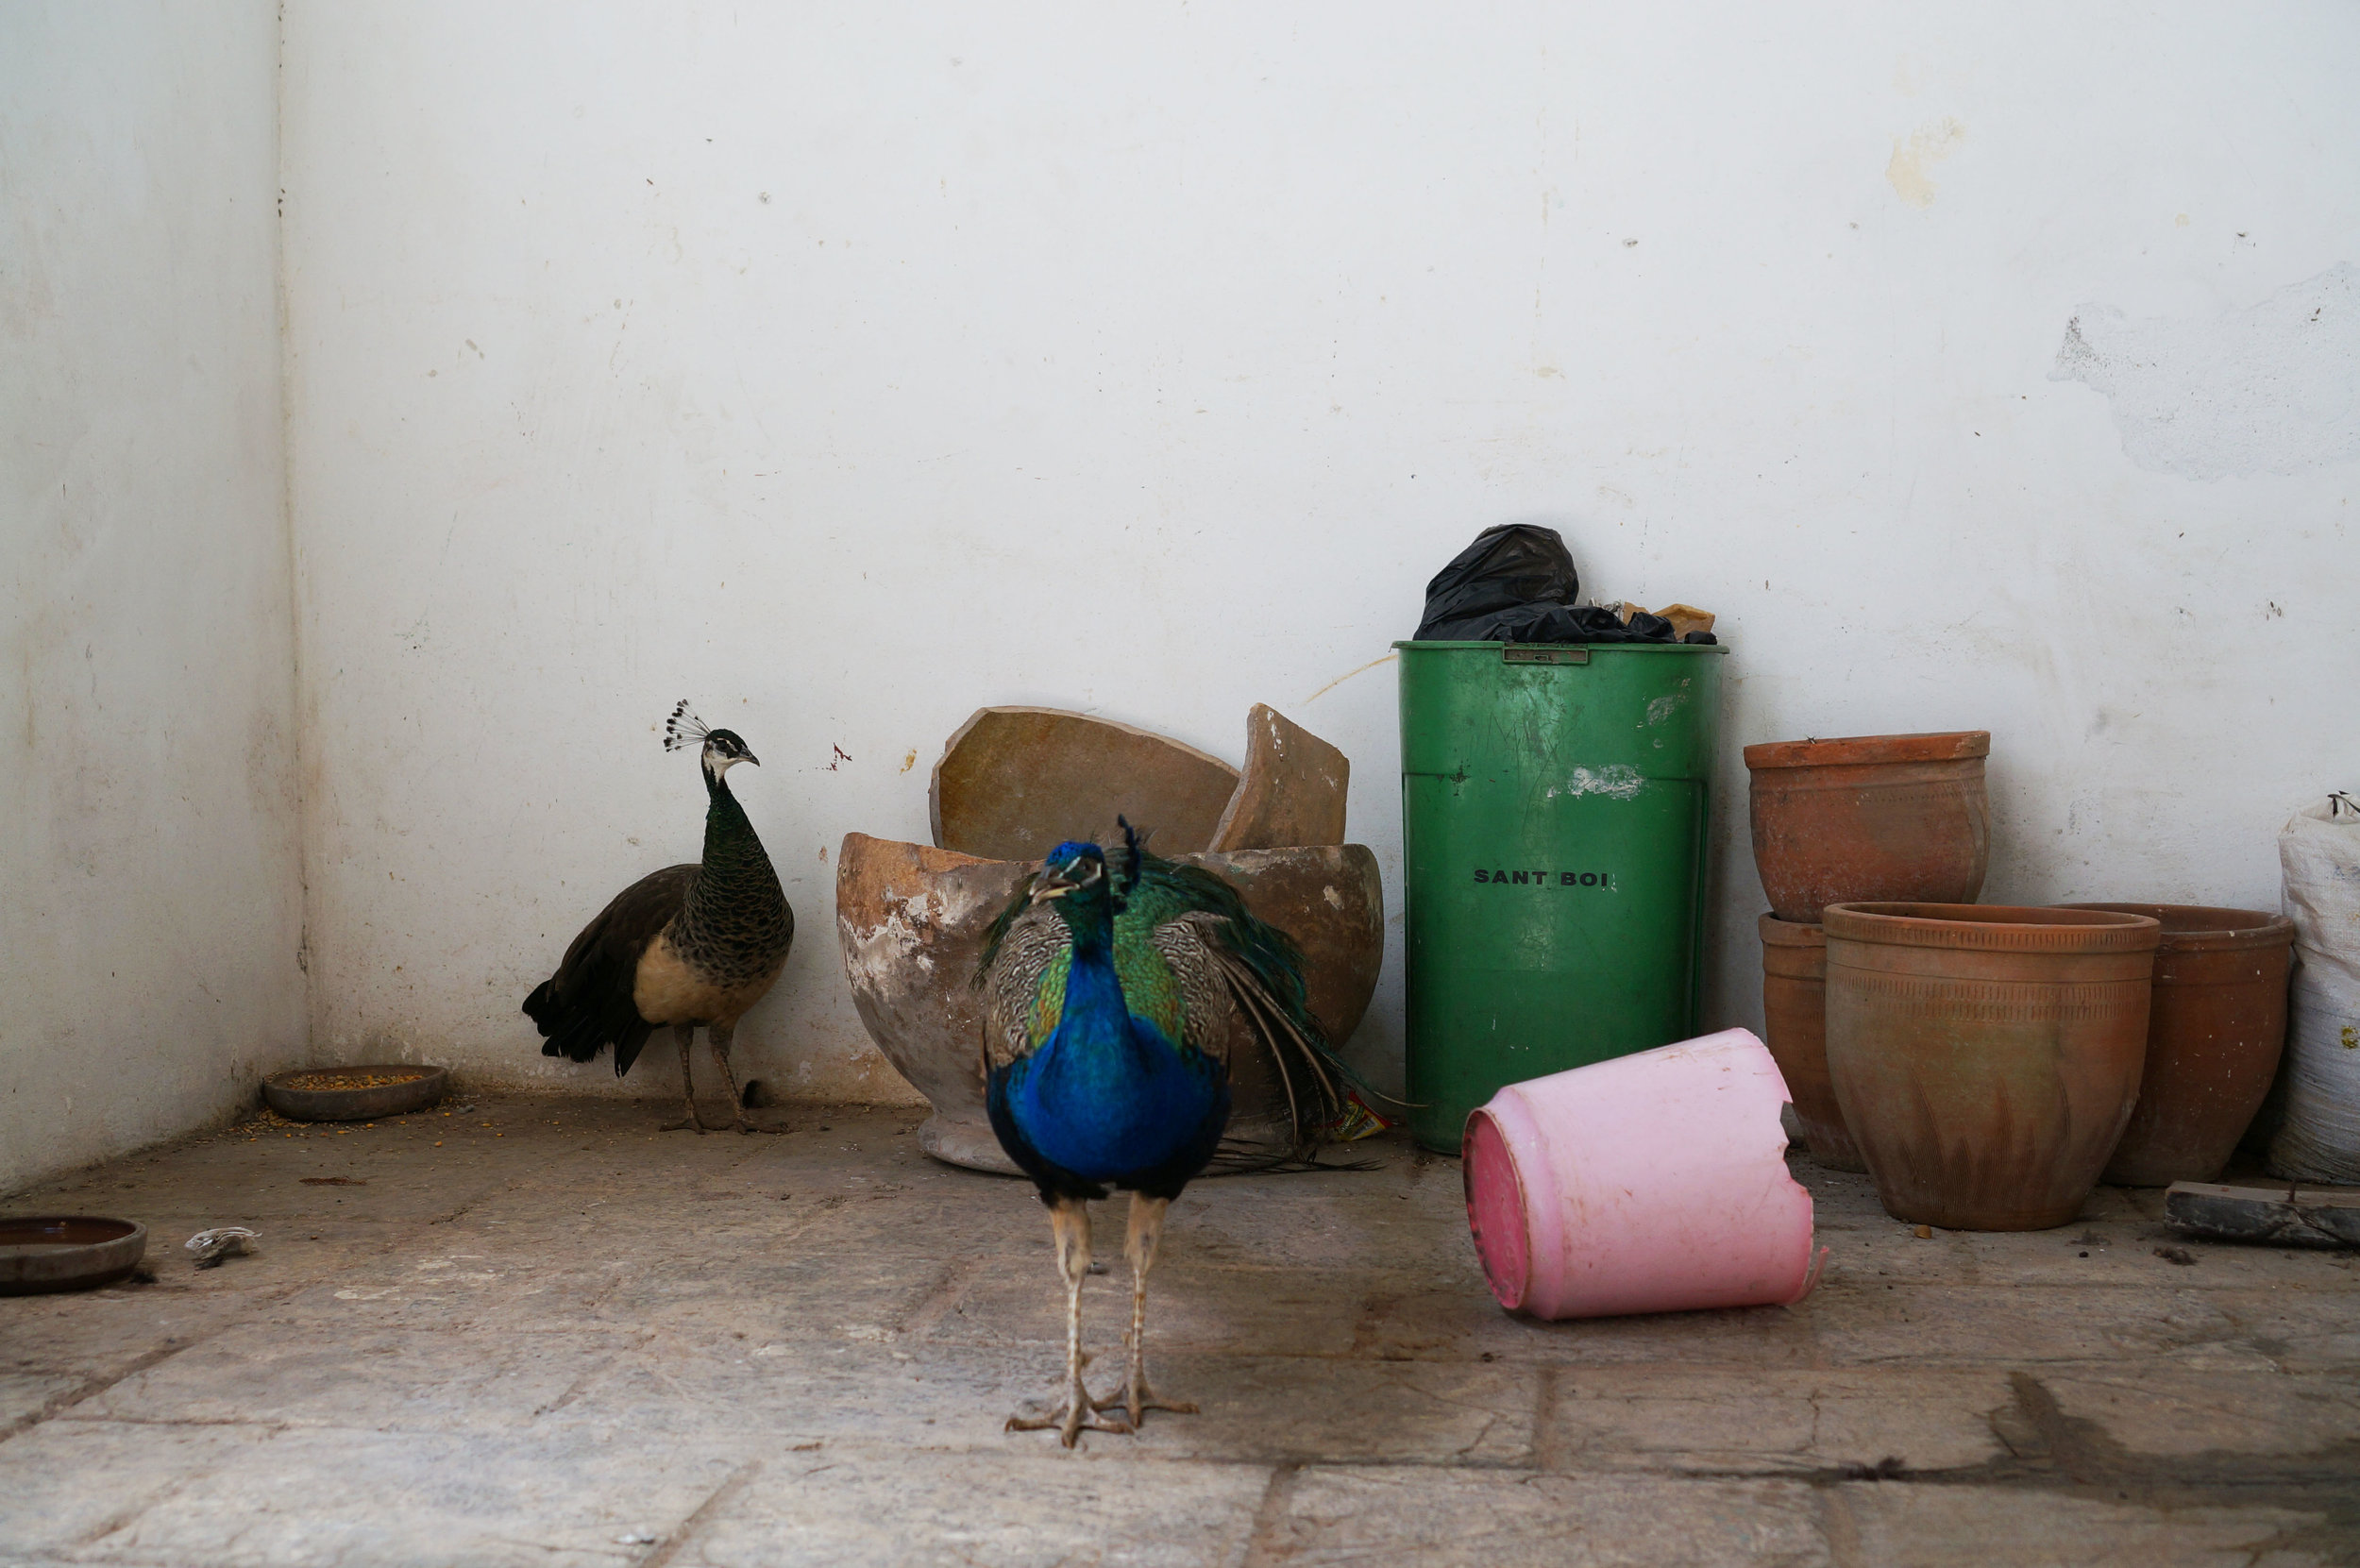 Peacocks in the Casa de los Árabes